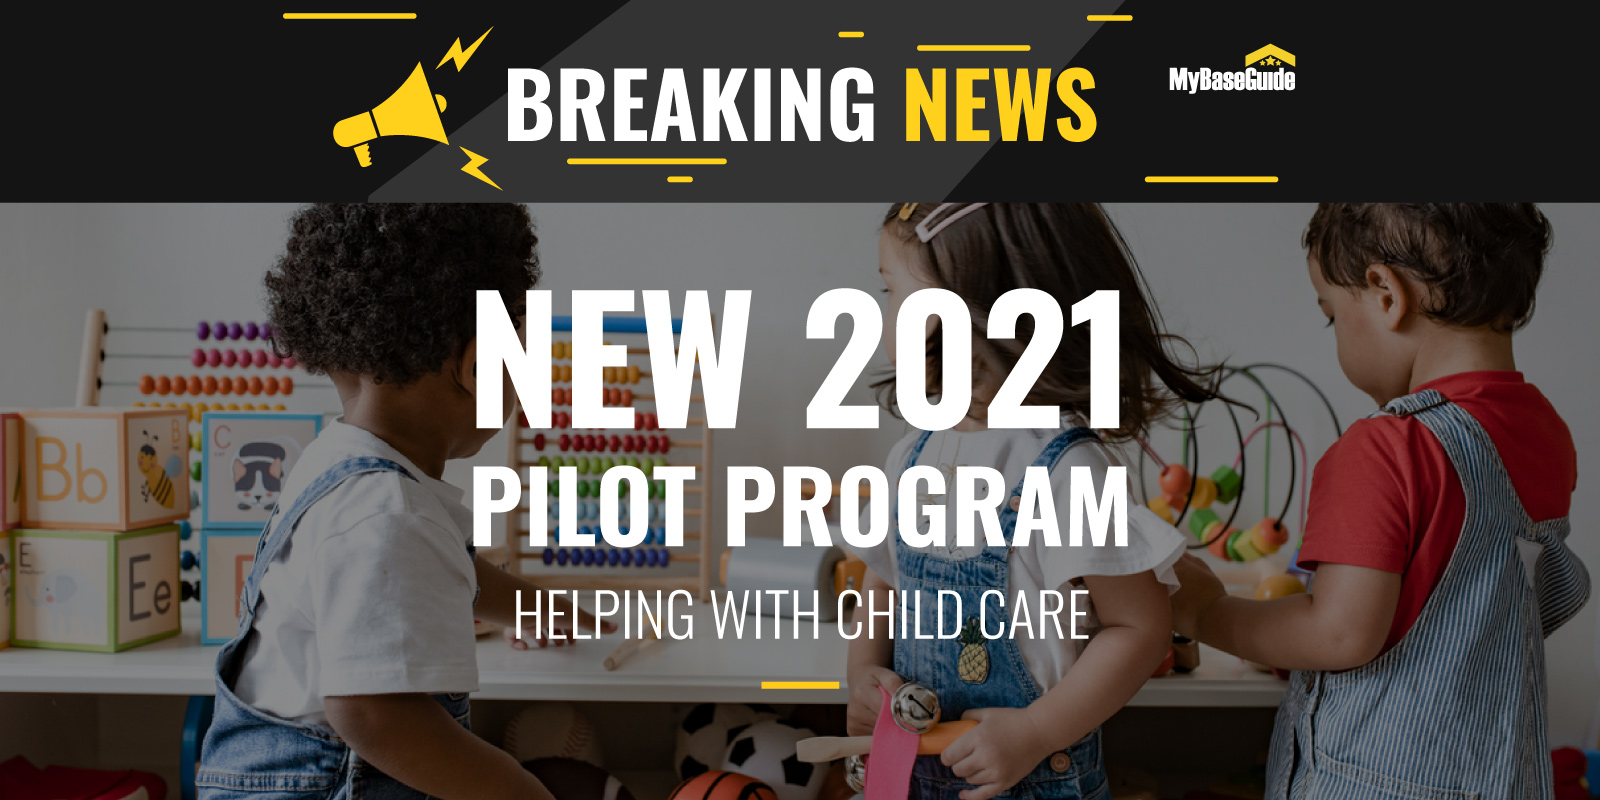 New 2021 Pilot Program Aims to Help Military Parents With Child Care